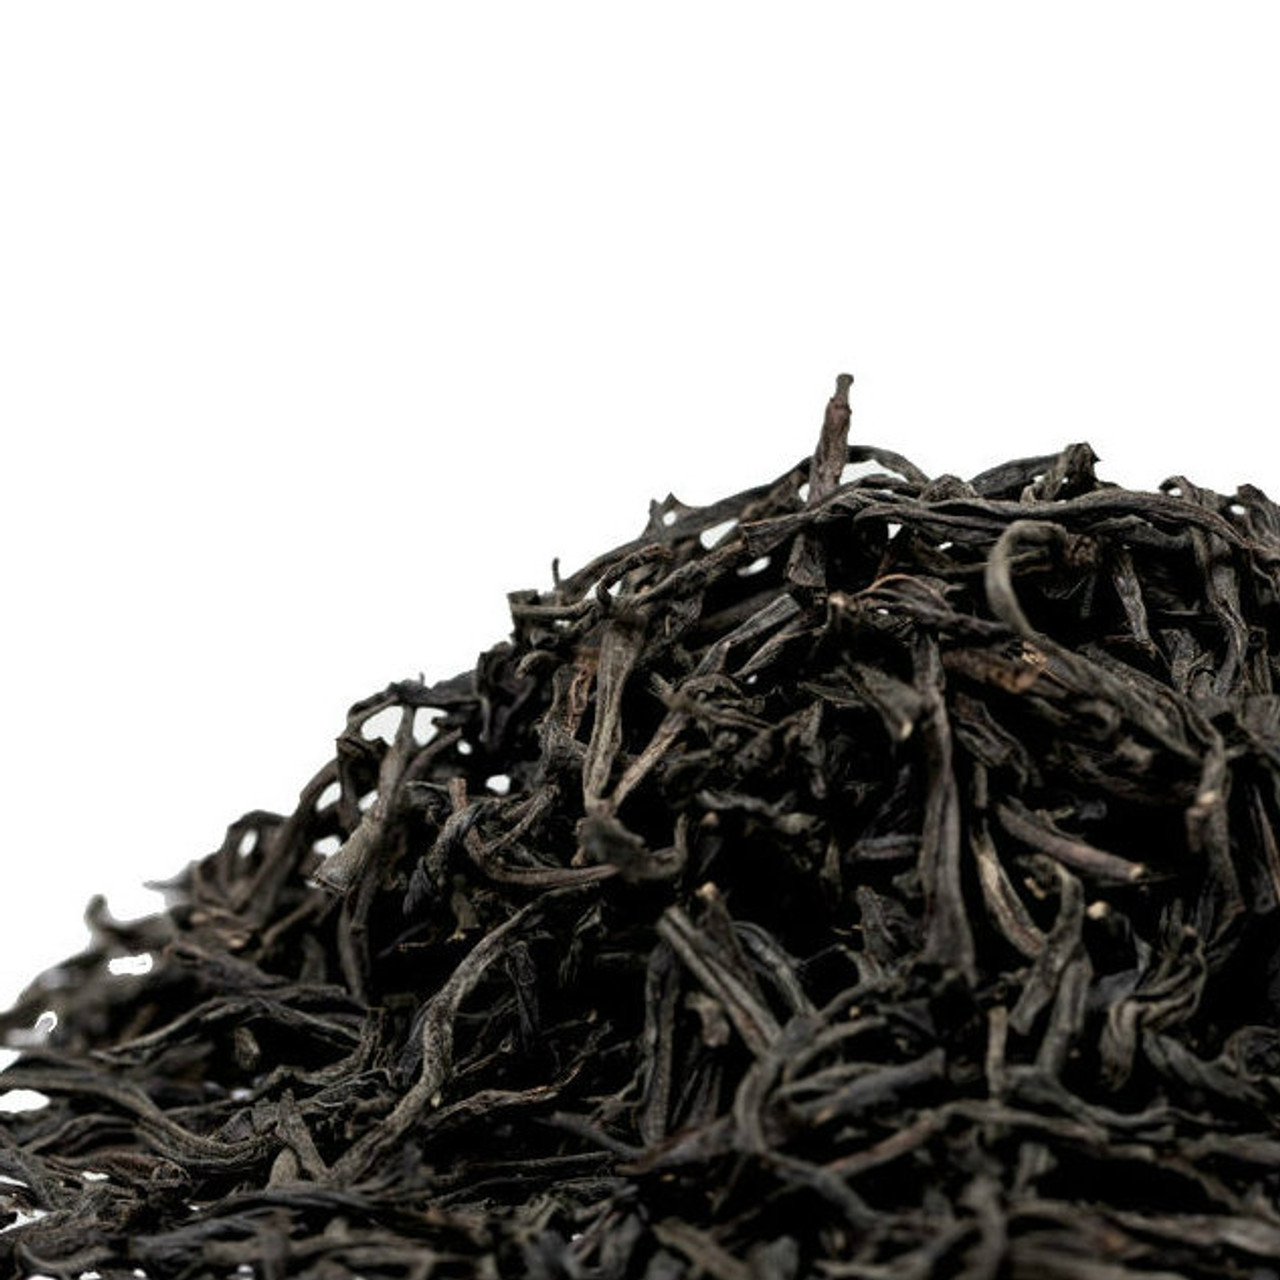 Ceylon black tea cultivated at The Vithanakanda Estate is beautiful in both looks and taste. An excellent basic black tea that holds up well to cream and sweetener, if desired, and even goes well as an iced tea. In fact, it is so versatile that we even recommend it as the black tea of choice when pairing with our Authentic Chai Masala spice blend. Steep: 1-1.5 tsp, Boiling Water, 3-4 Minutes